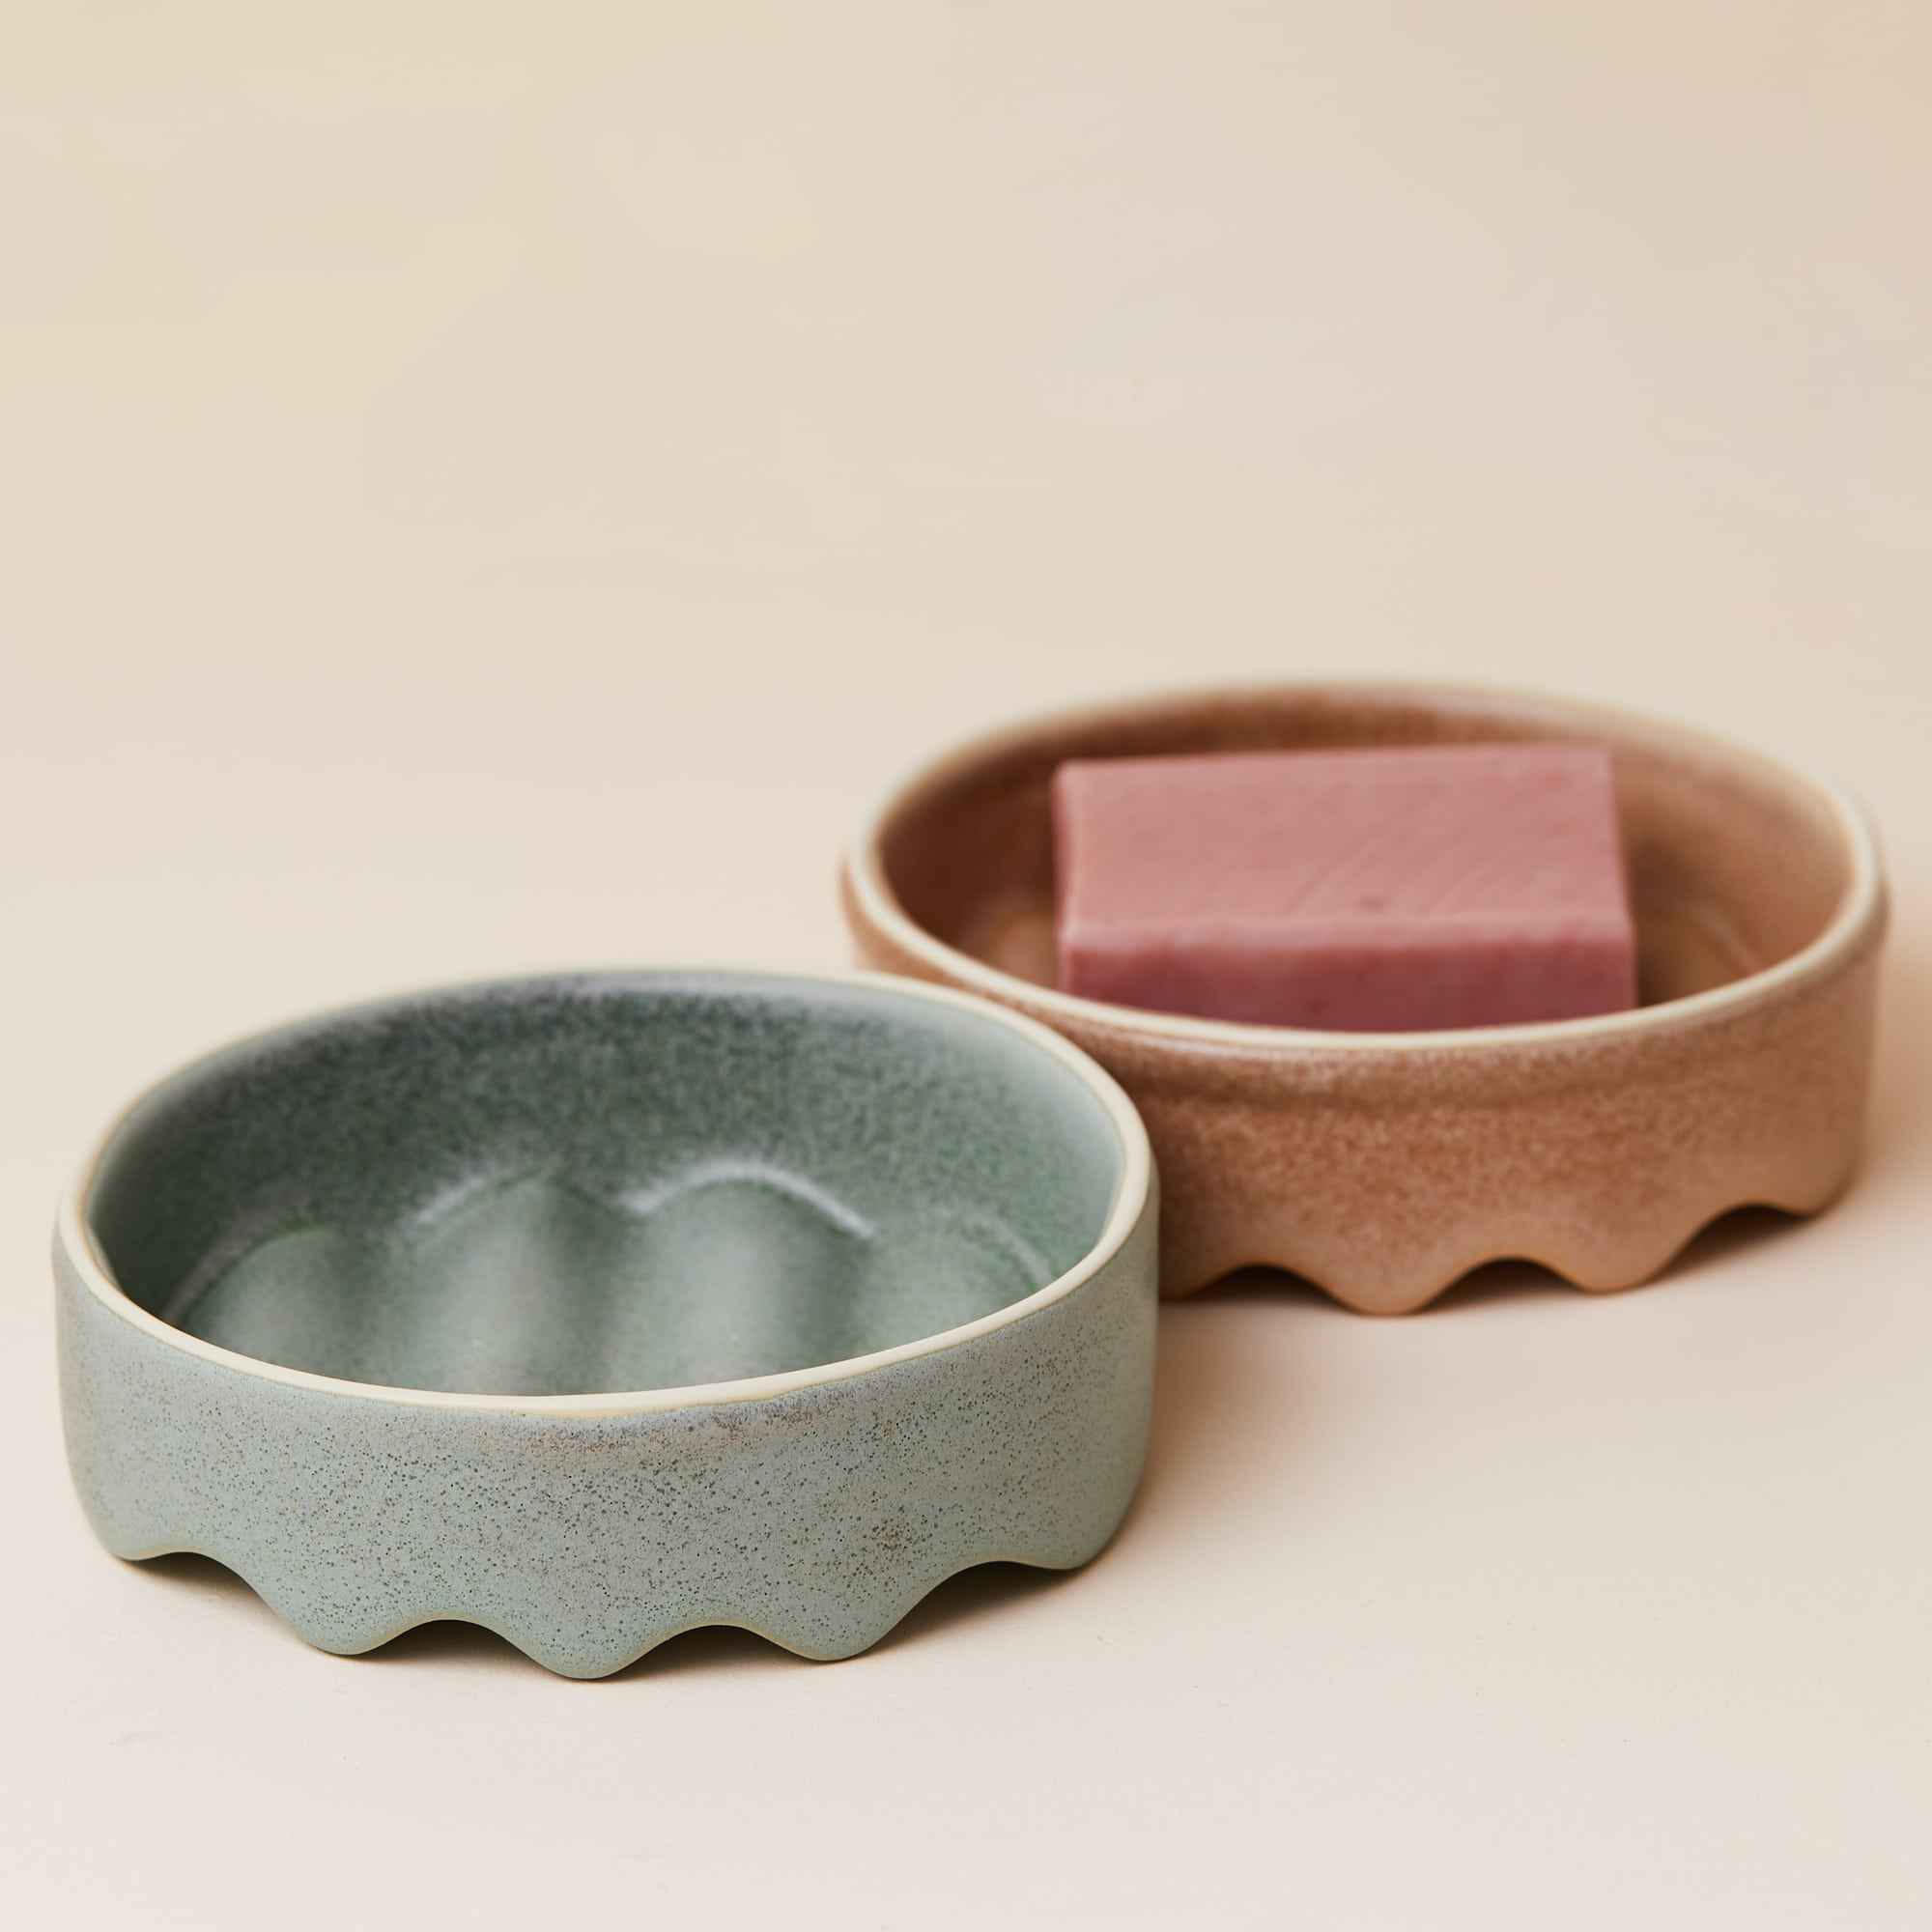 Handmade ceramic soap dishes from Monsoon Living Newcastle